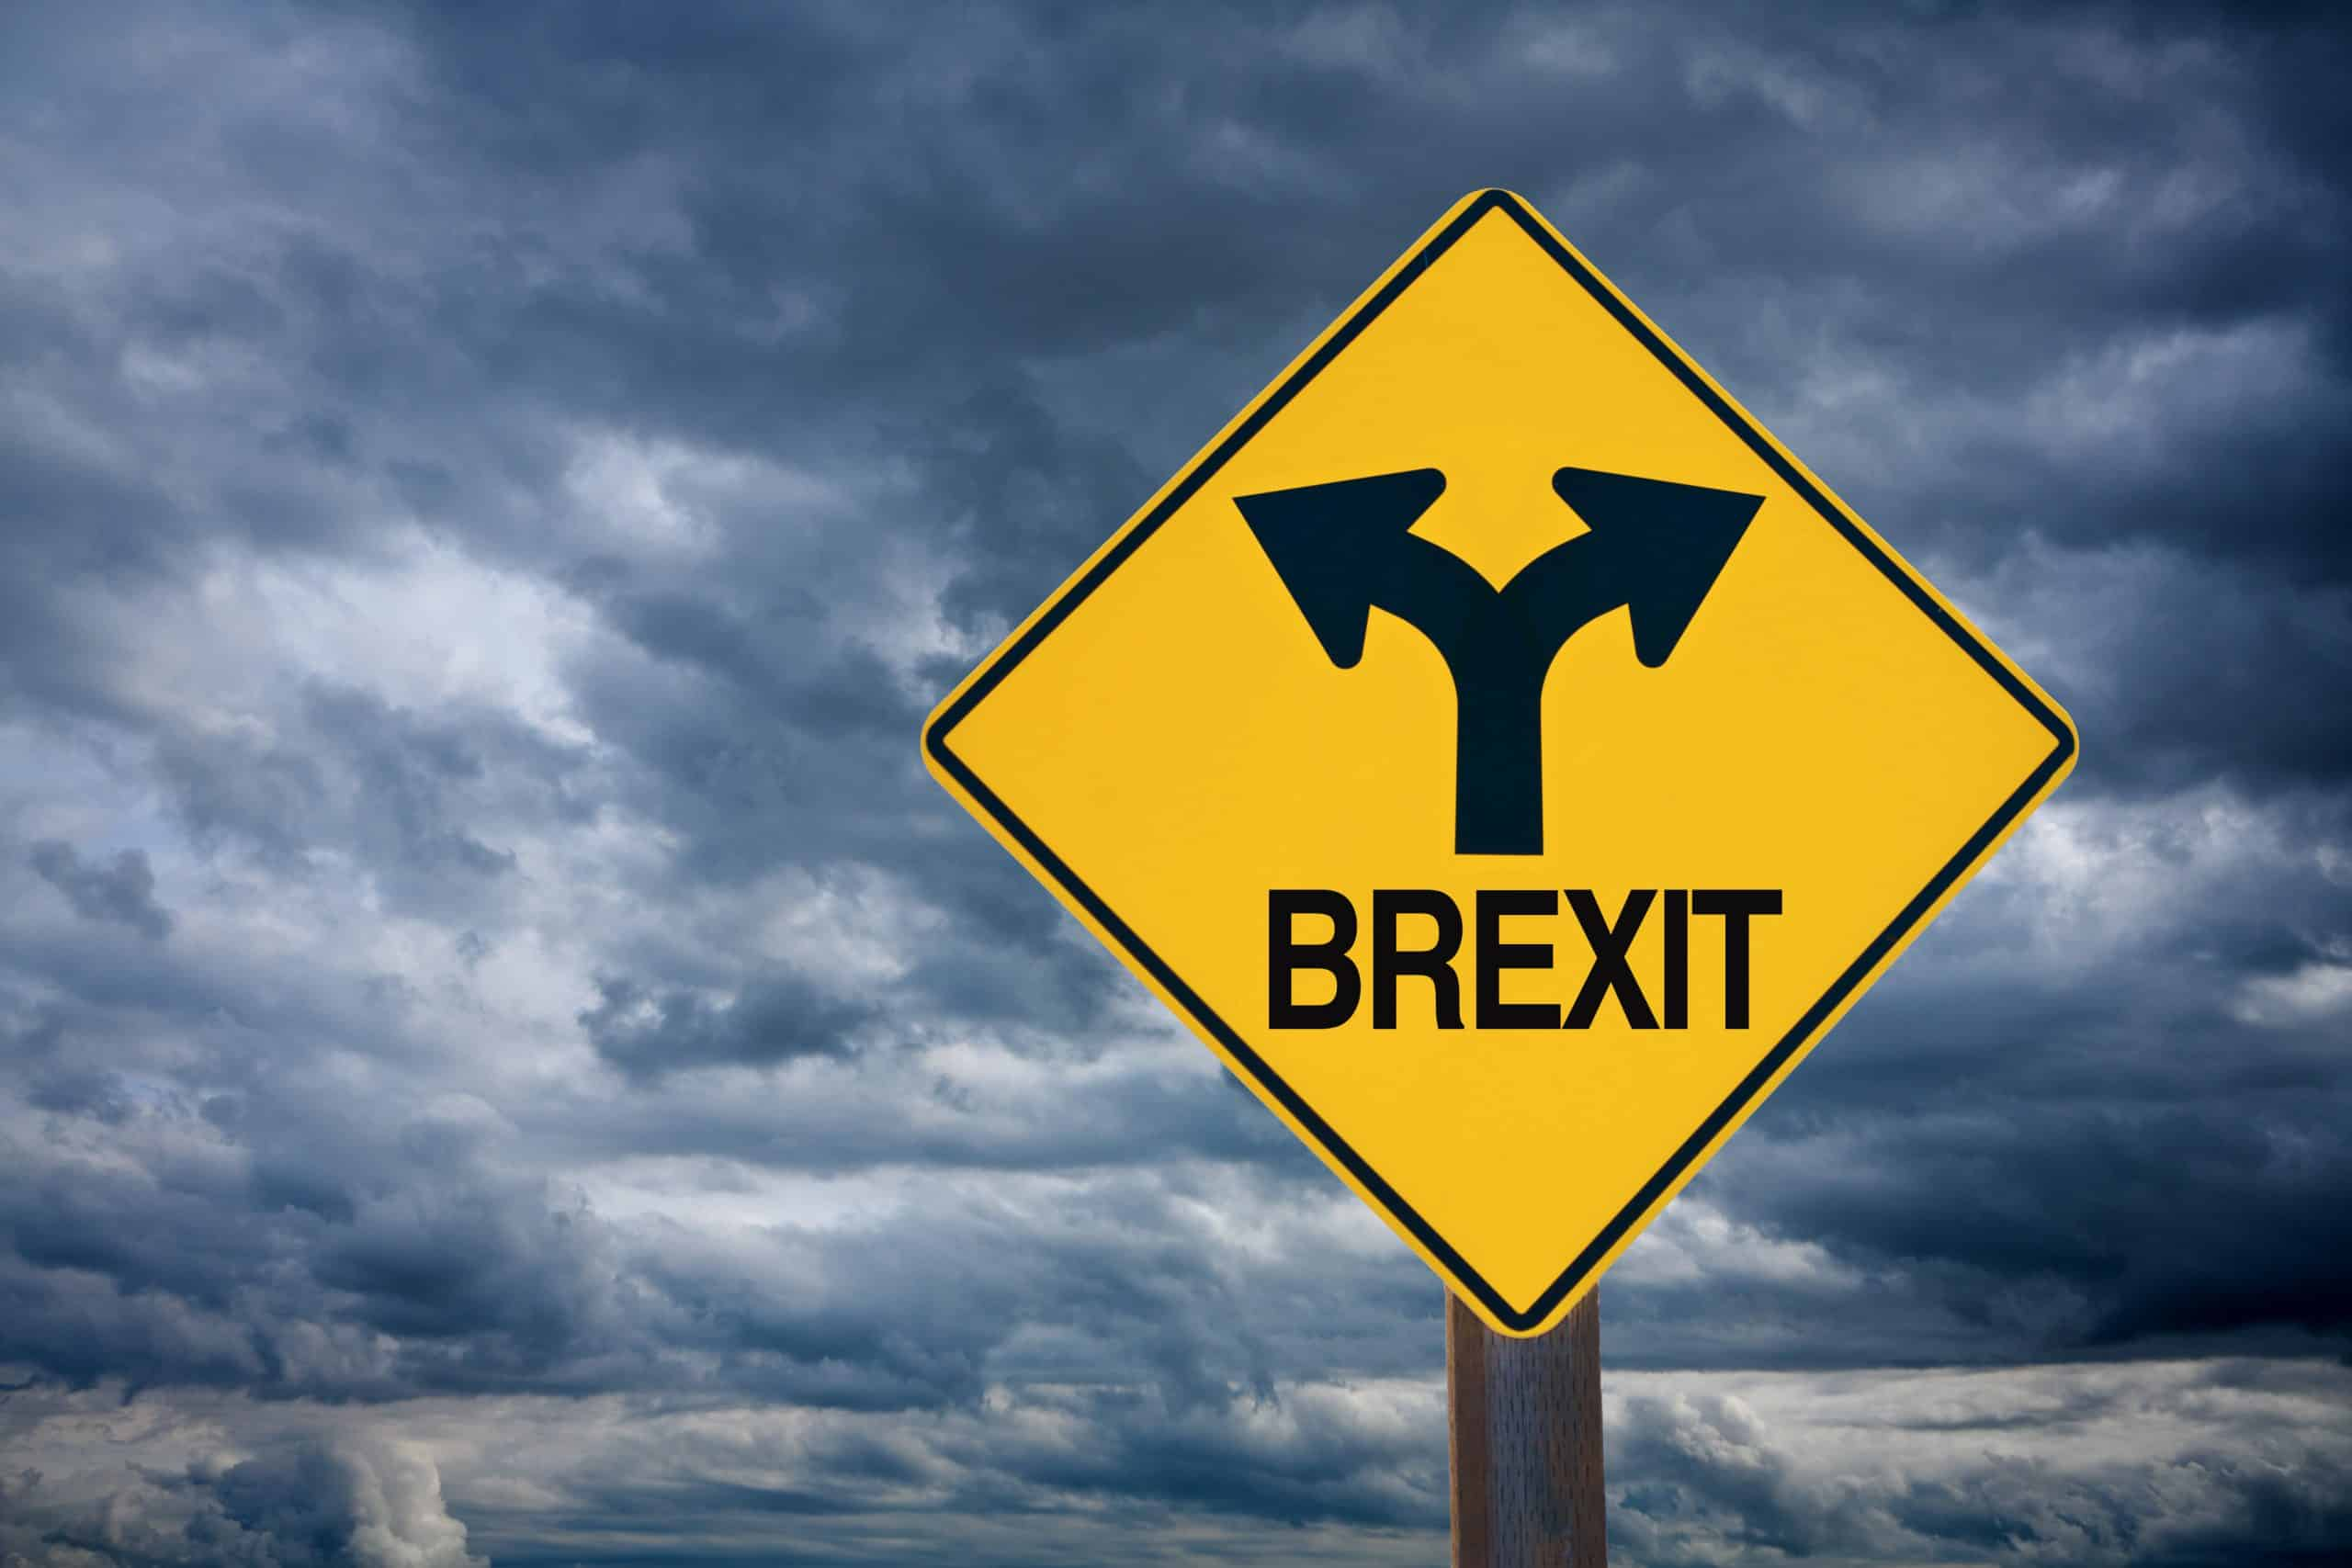 BREXIT Road Sign with Stormy Sky Future Ahead